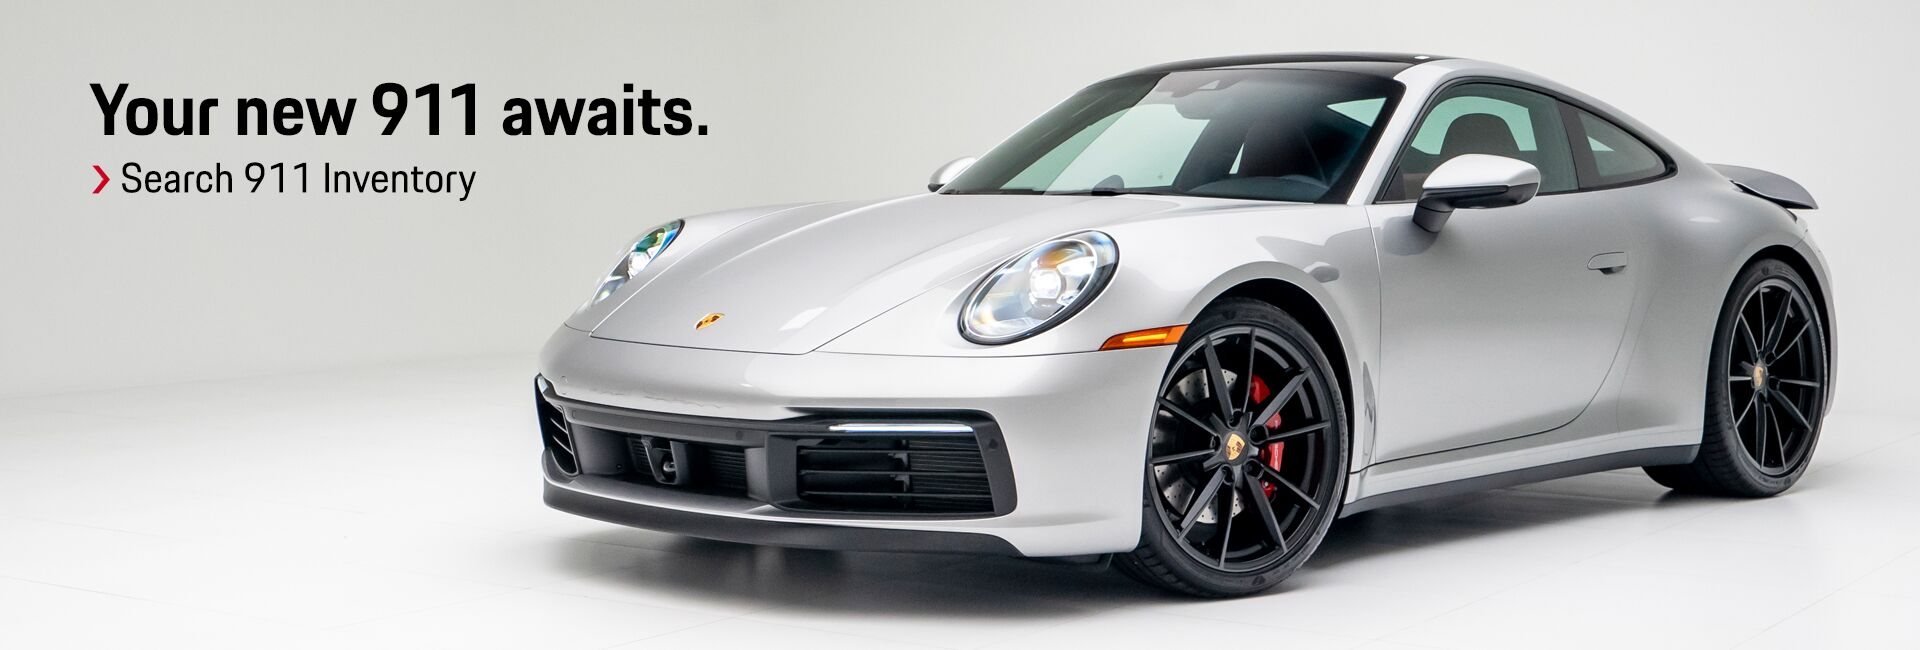 new 911 inventory